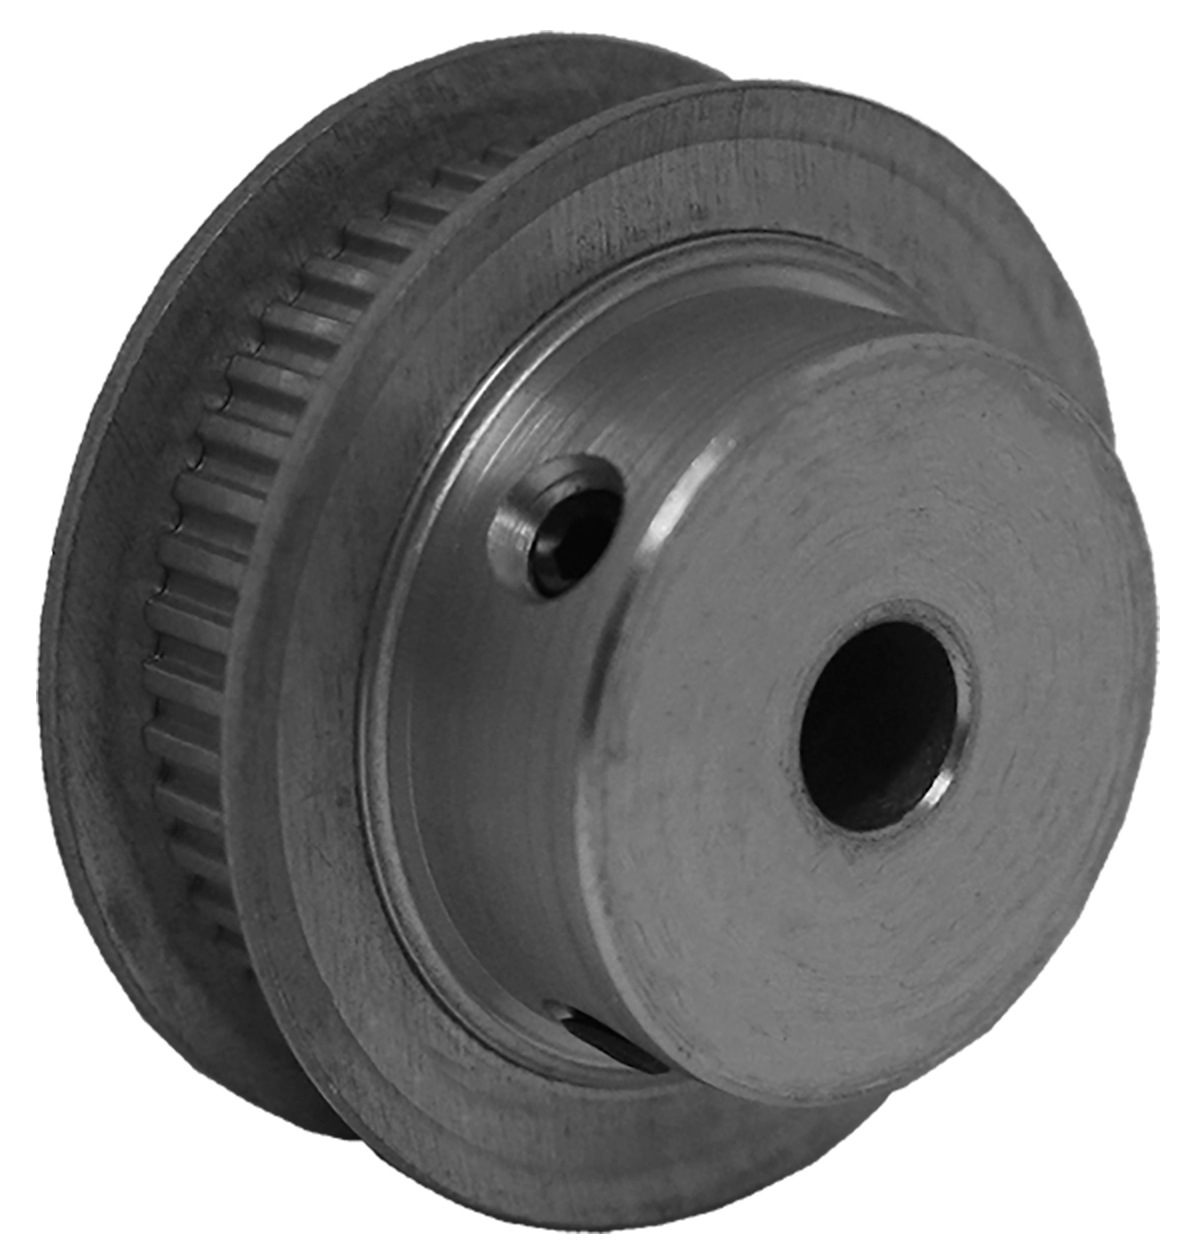 48MP025-6FA3 - Aluminum Imperial Pitch Pulleys